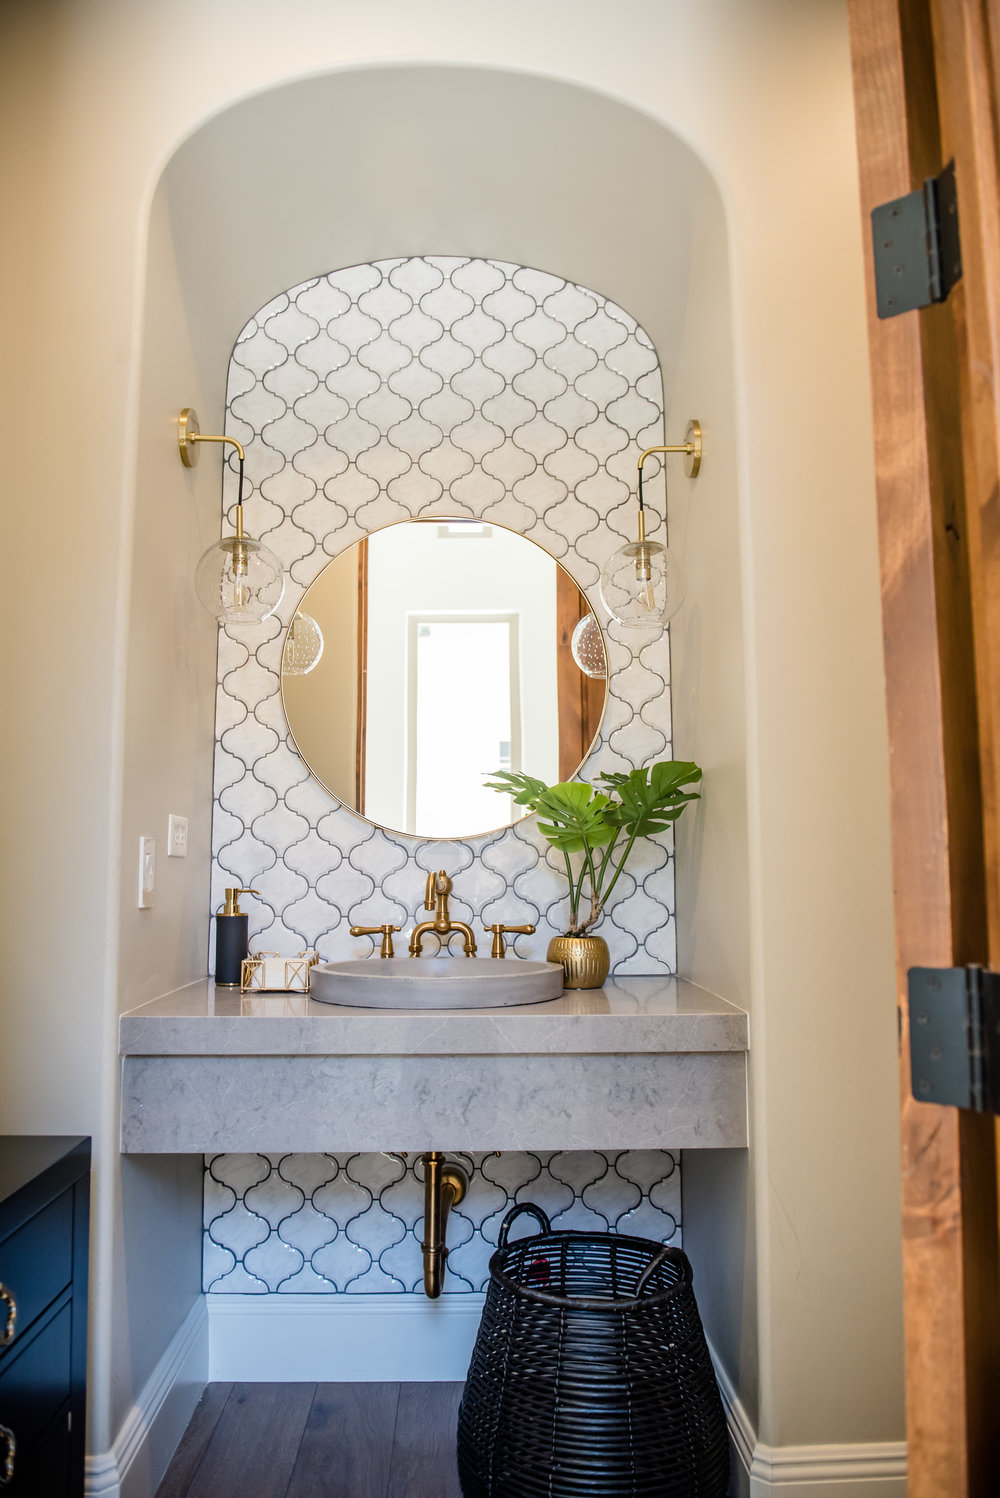 41+powderbath+tile+arabesque+brass+lighting+bohostyle.jpg